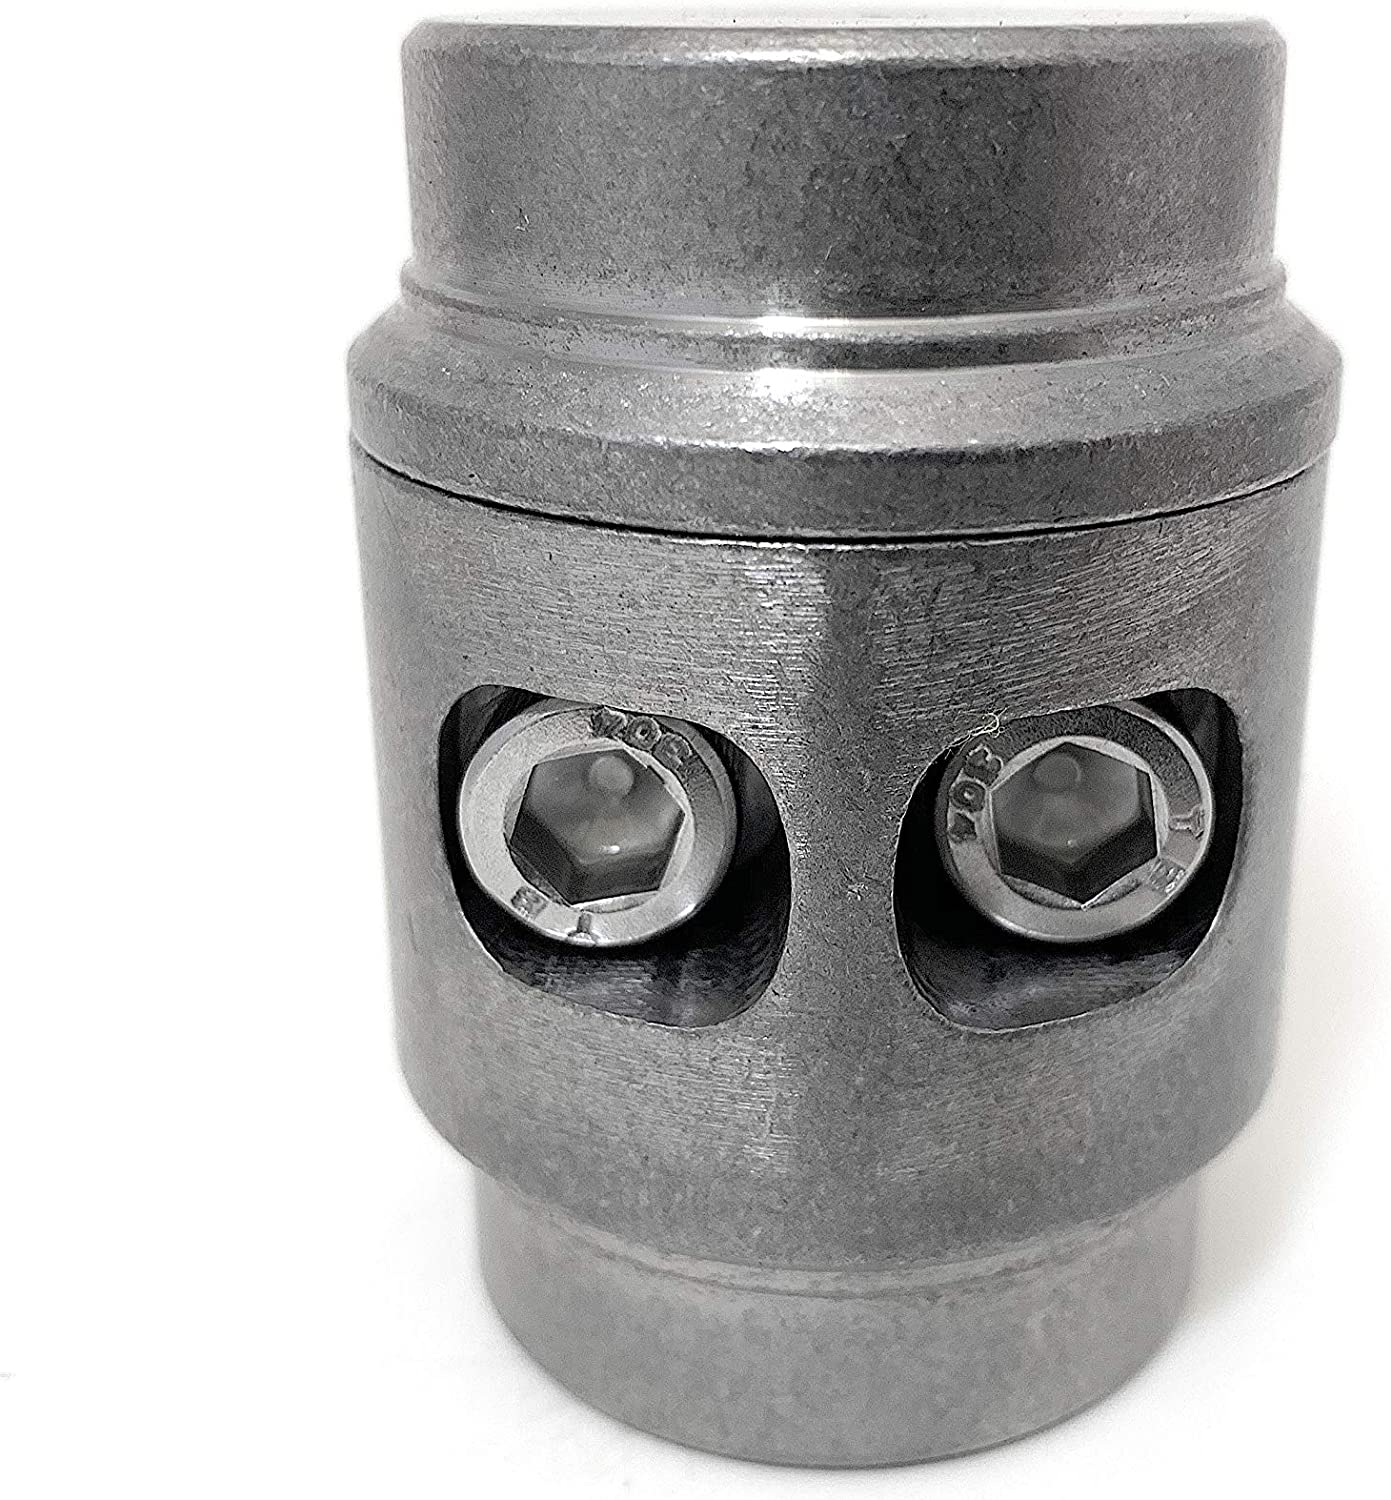 Tube Connector Adapter Weld Fabrication Super sale period limited .095 Cheap 4